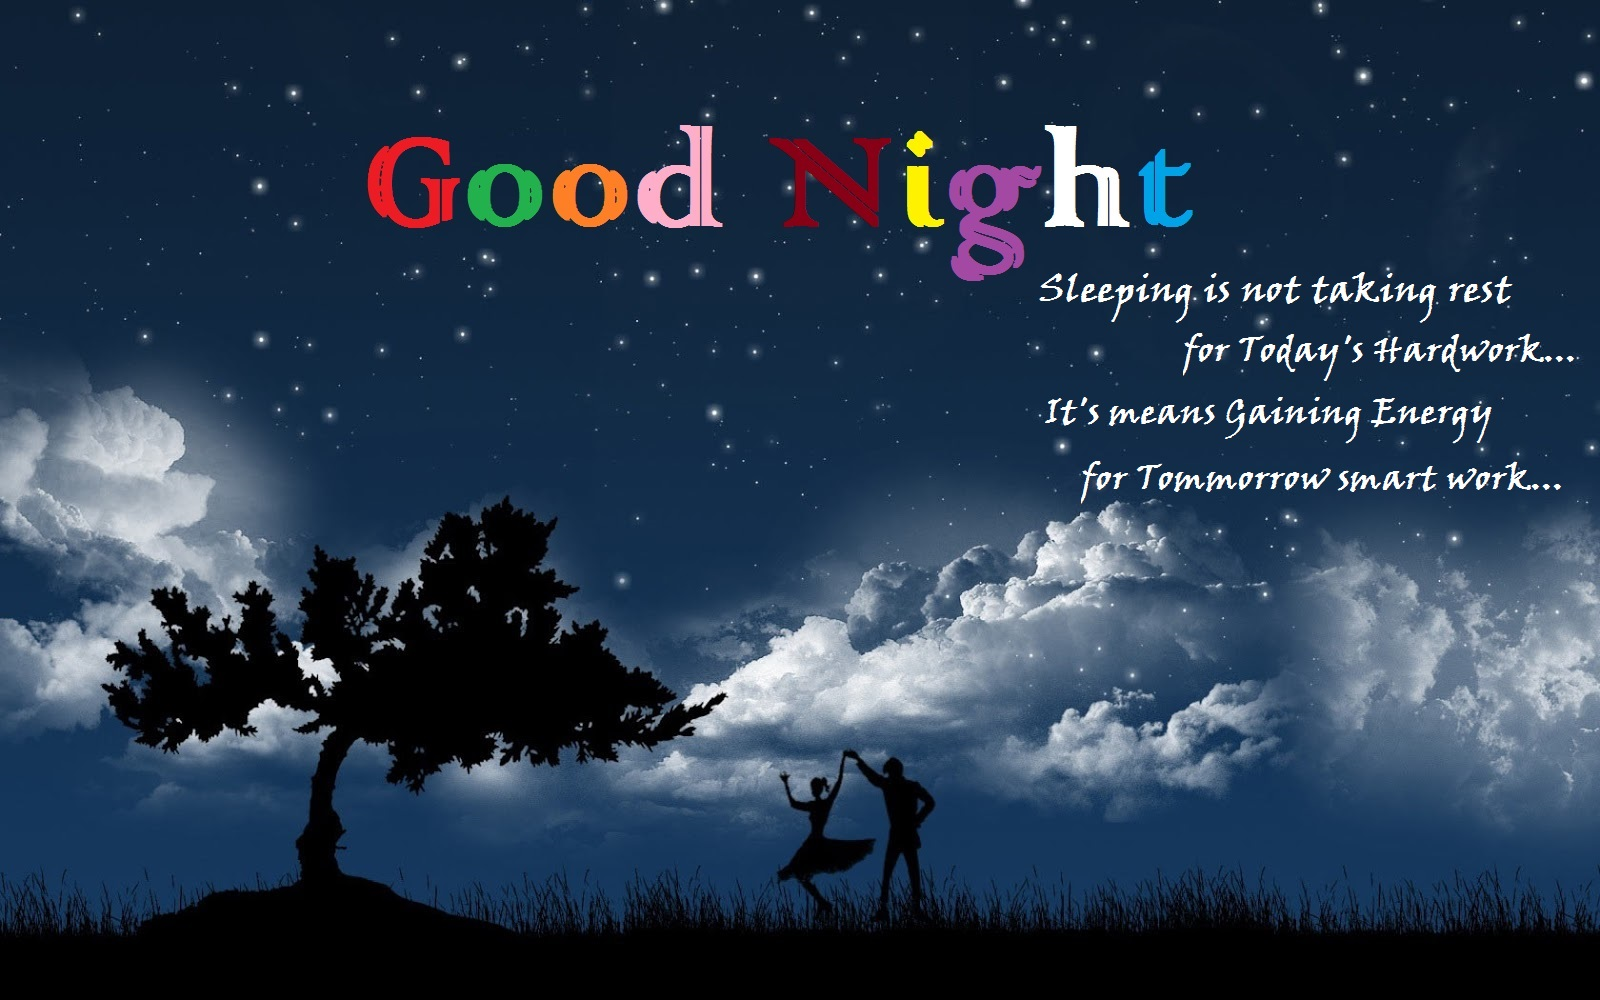 Goodnight Sweetheart Quotes Quotesgram: Crazy Good Night Quotes. QuotesGram